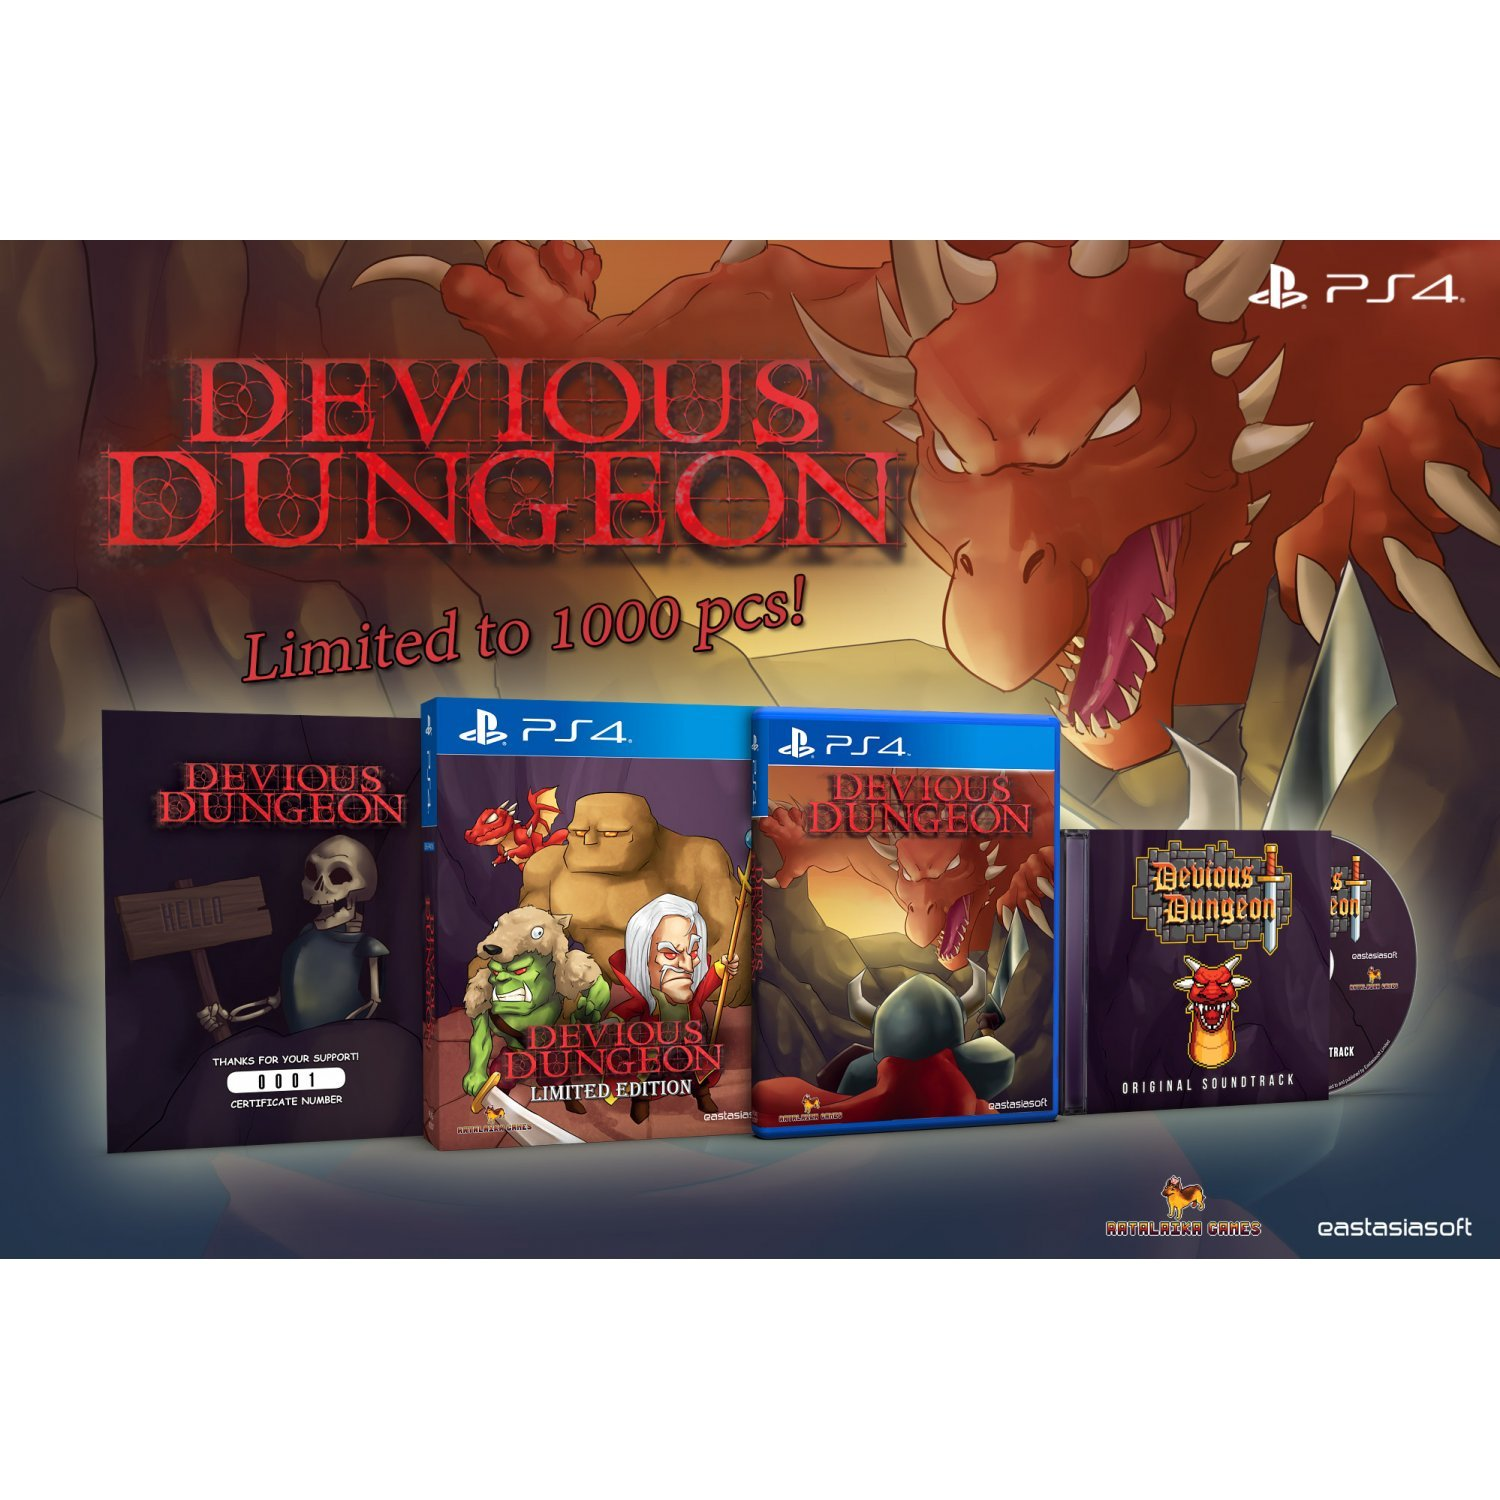 Devious Dungeon - PS4 - Play-Asia Devious-dungeon-limited-edition-569245.7